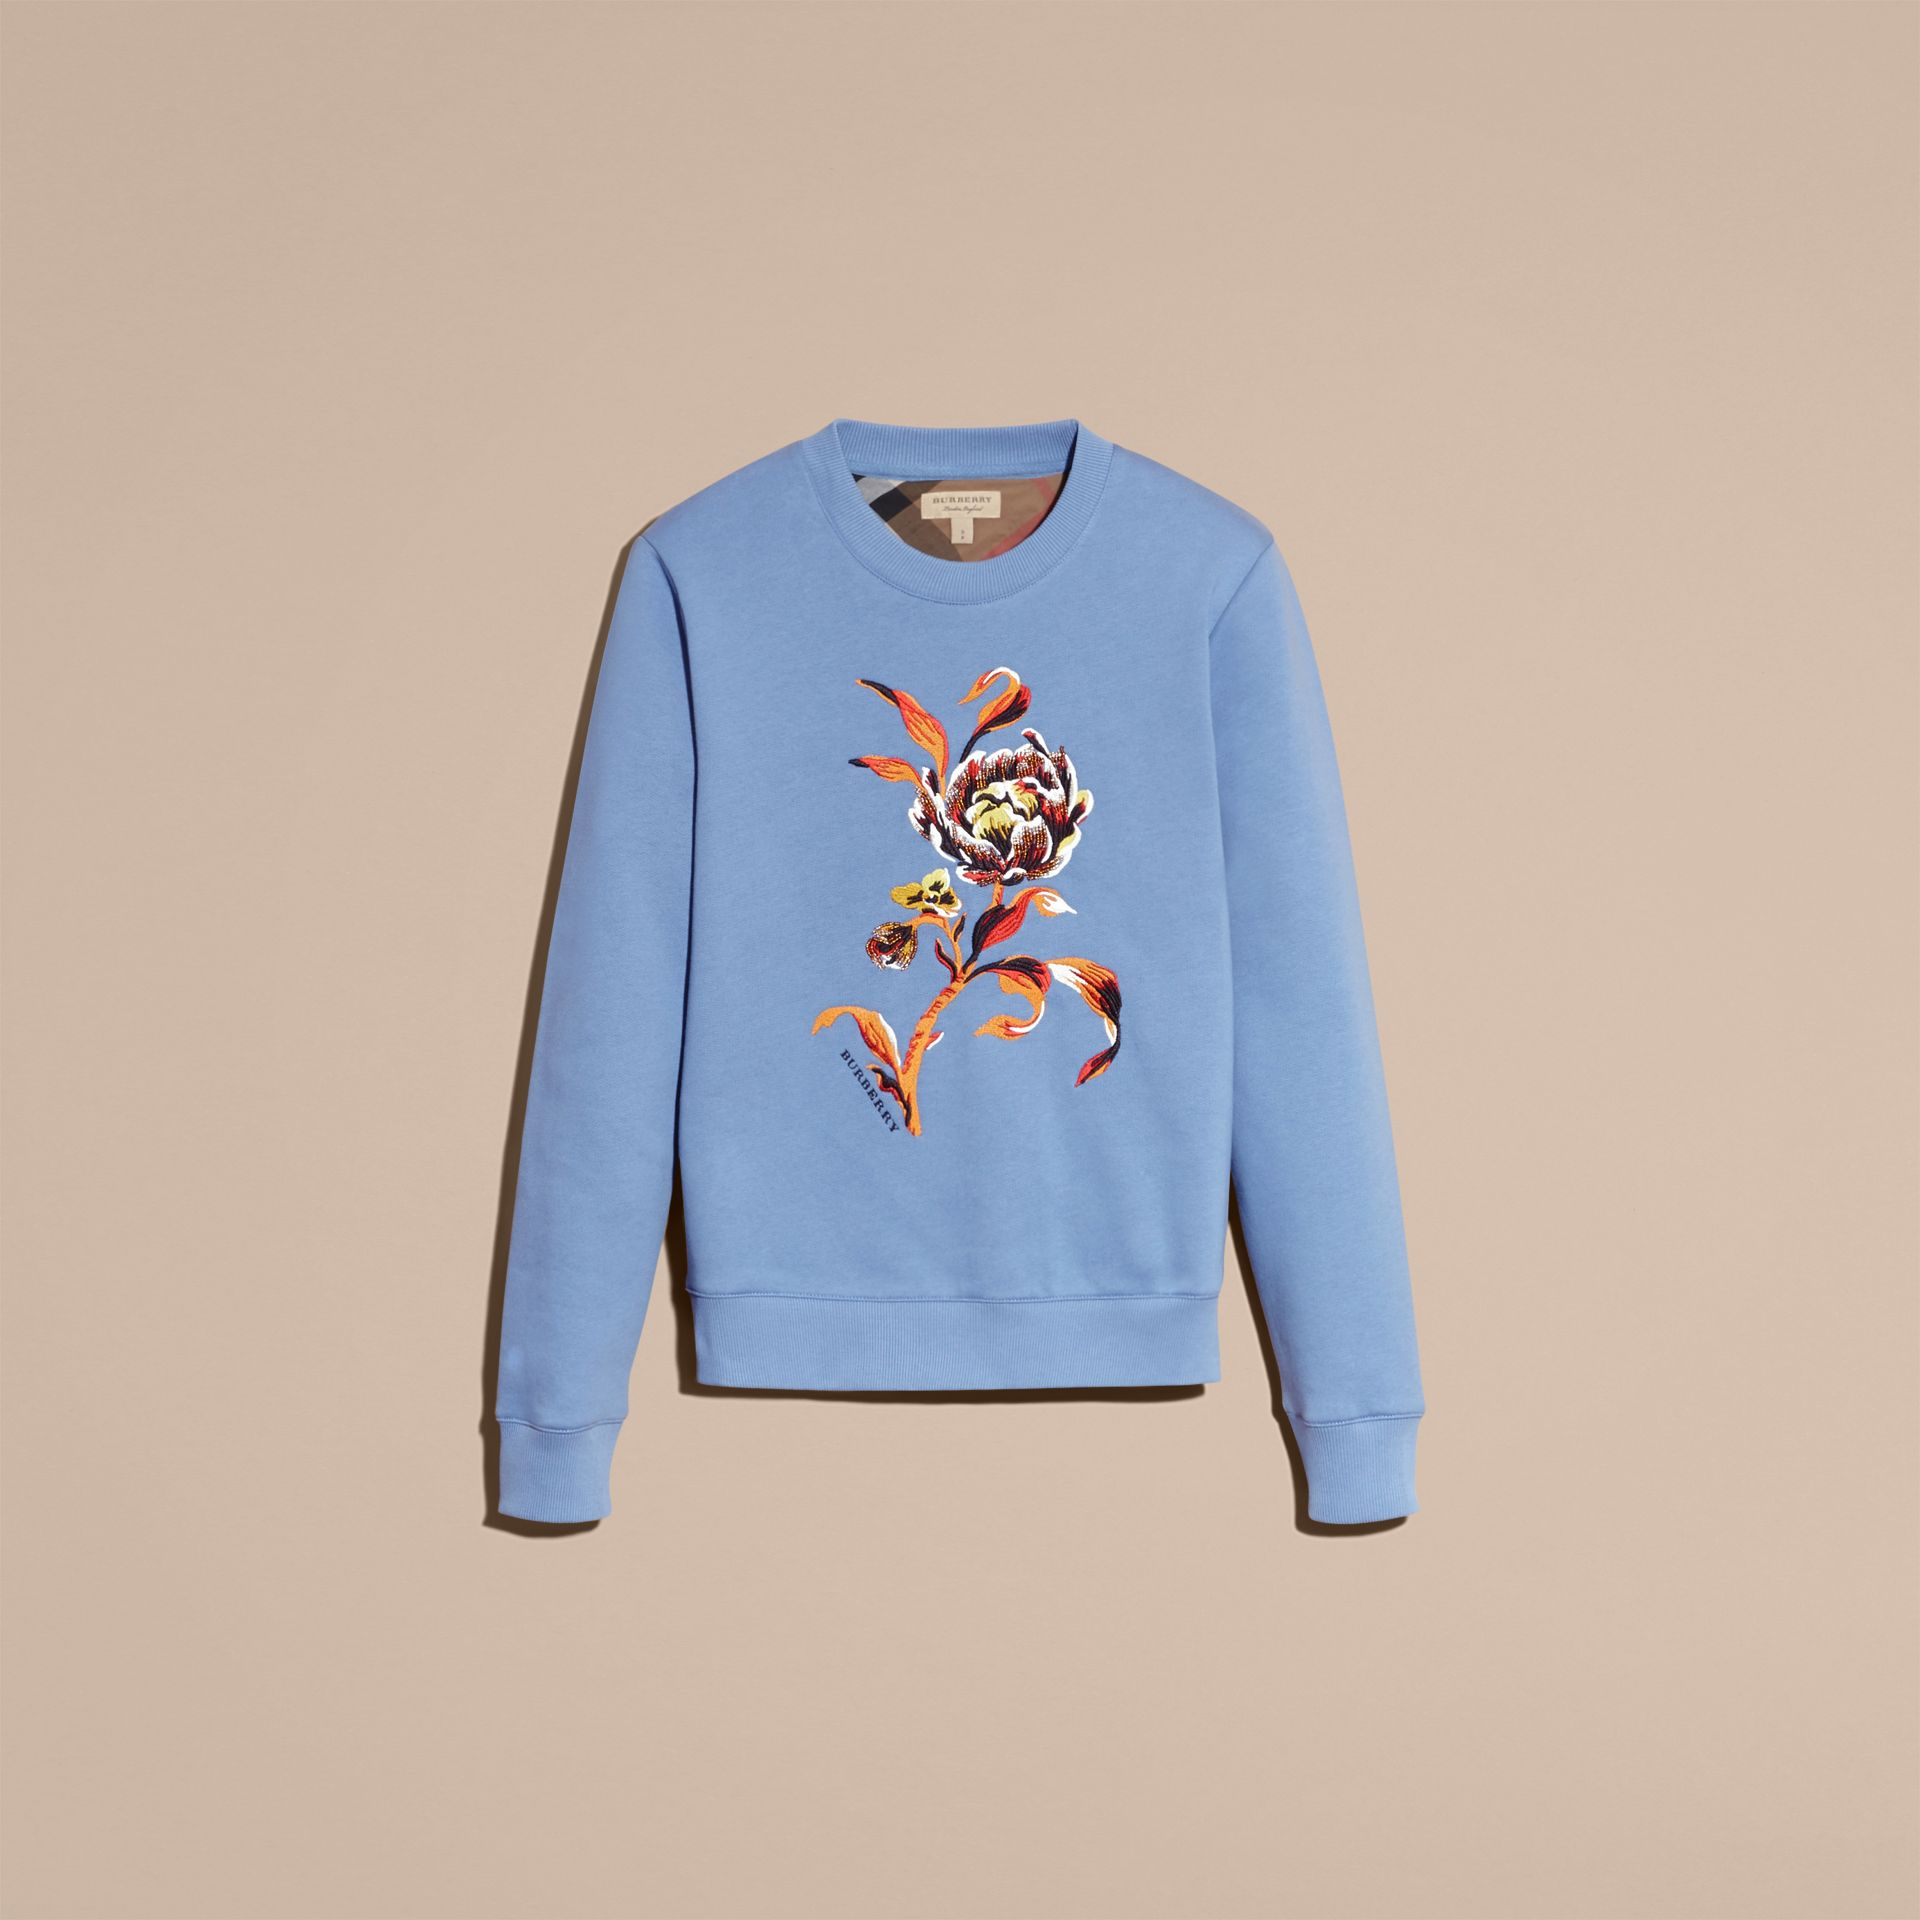 Embroidered Floral Motif Cotton Blend Sweatshirt Pale Hydrangea Blue - gallery image 4